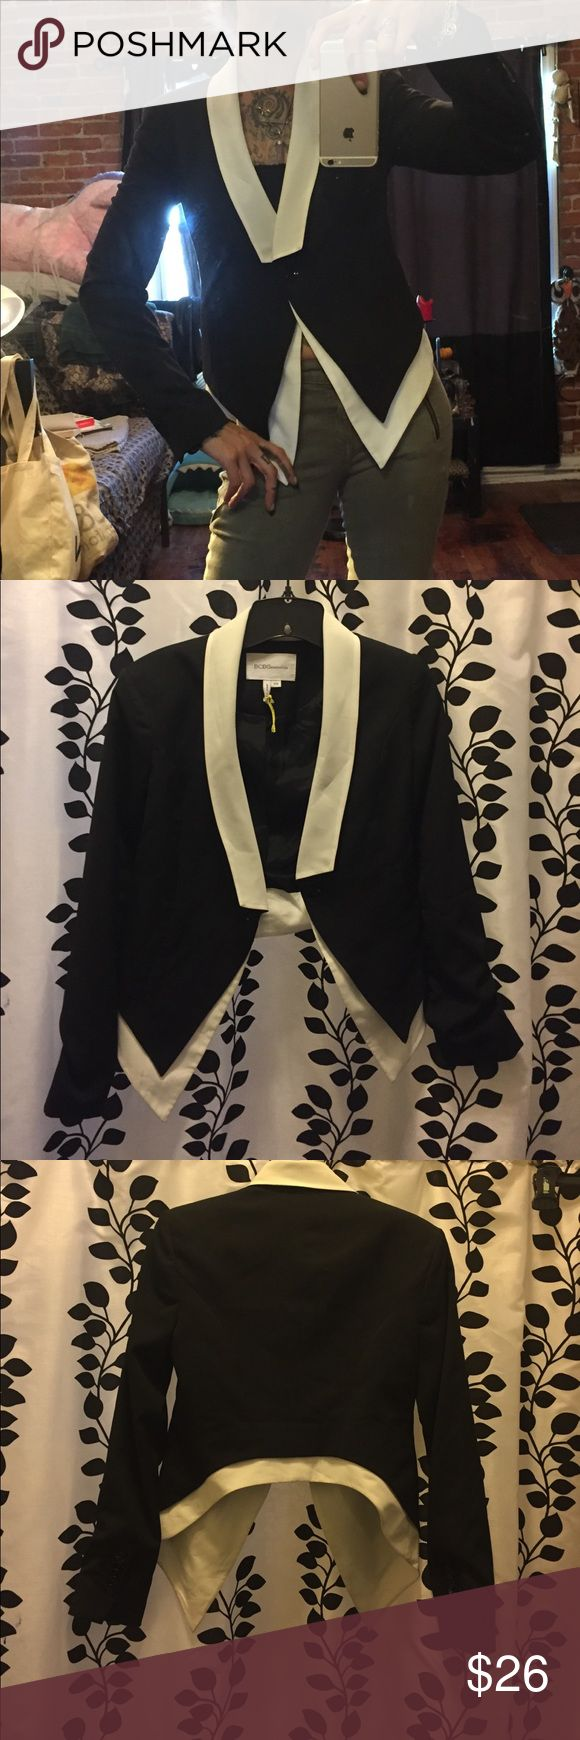 New without tags BCbgeneration cropped blazer Black with white detailing. Long in front and cropped in back. Single button. Never worn. So cute. Says xxs but fits more like a sm BCBGeneration Jackets & Coats Blazers